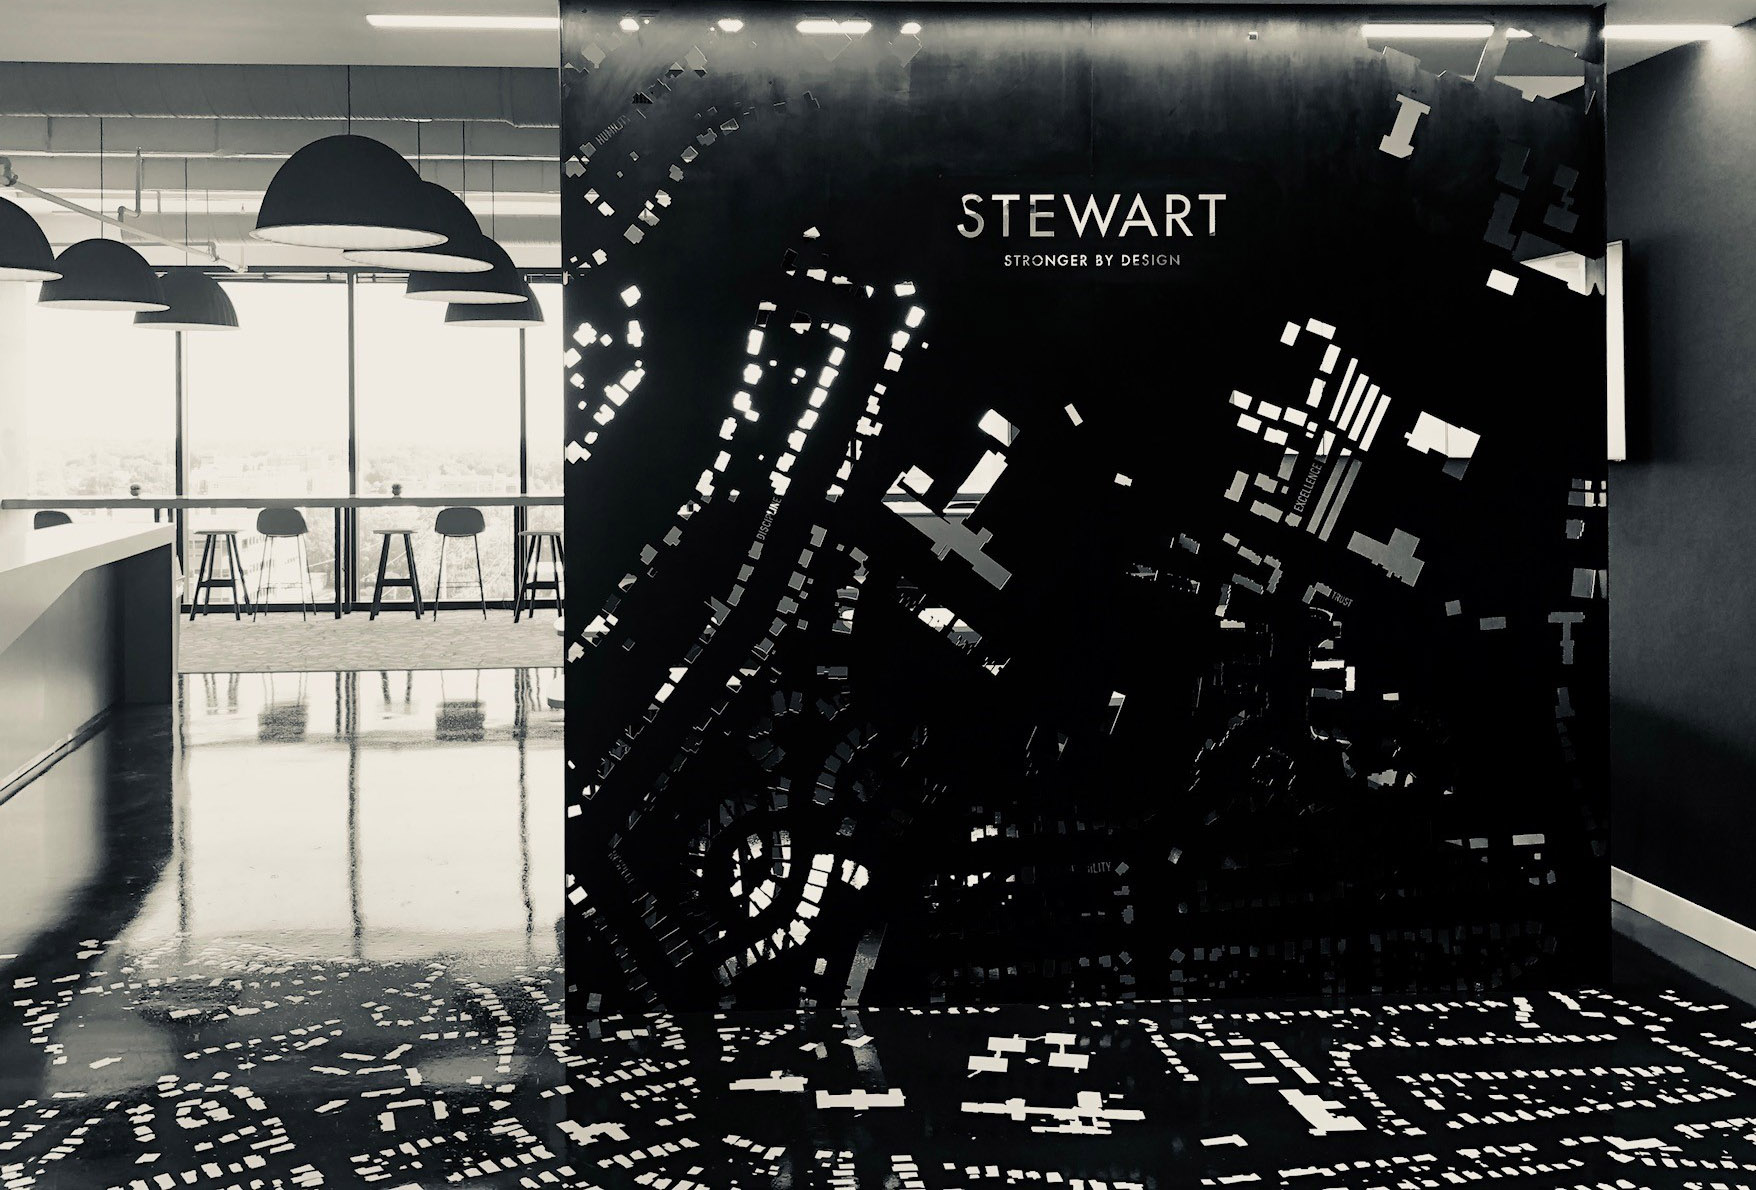 Stewart Relocates Headquarters to The Dillon